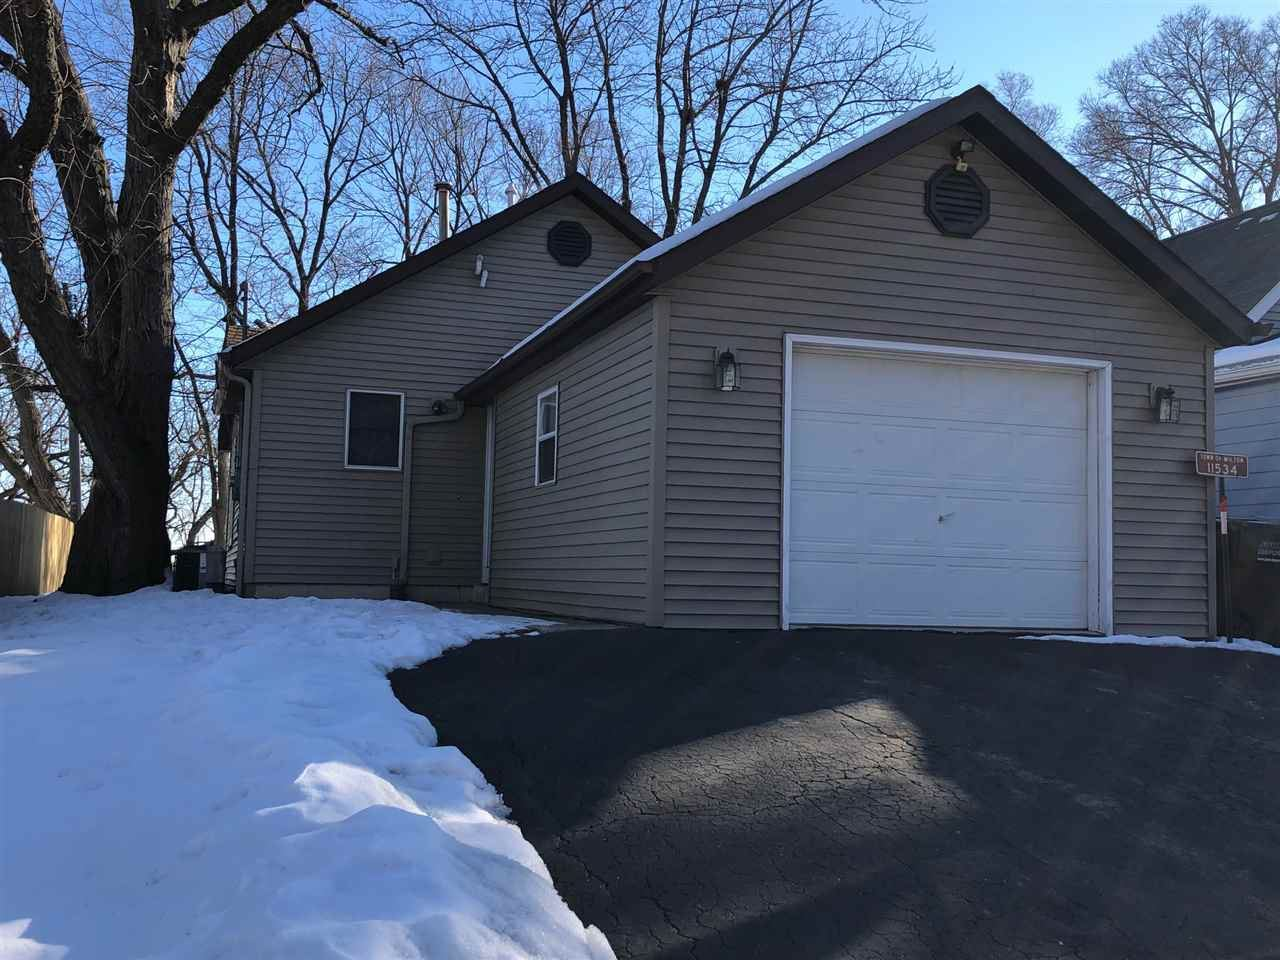 11534 N Lakeview Dr, Edgerton, WI 53534 - #: 1900989